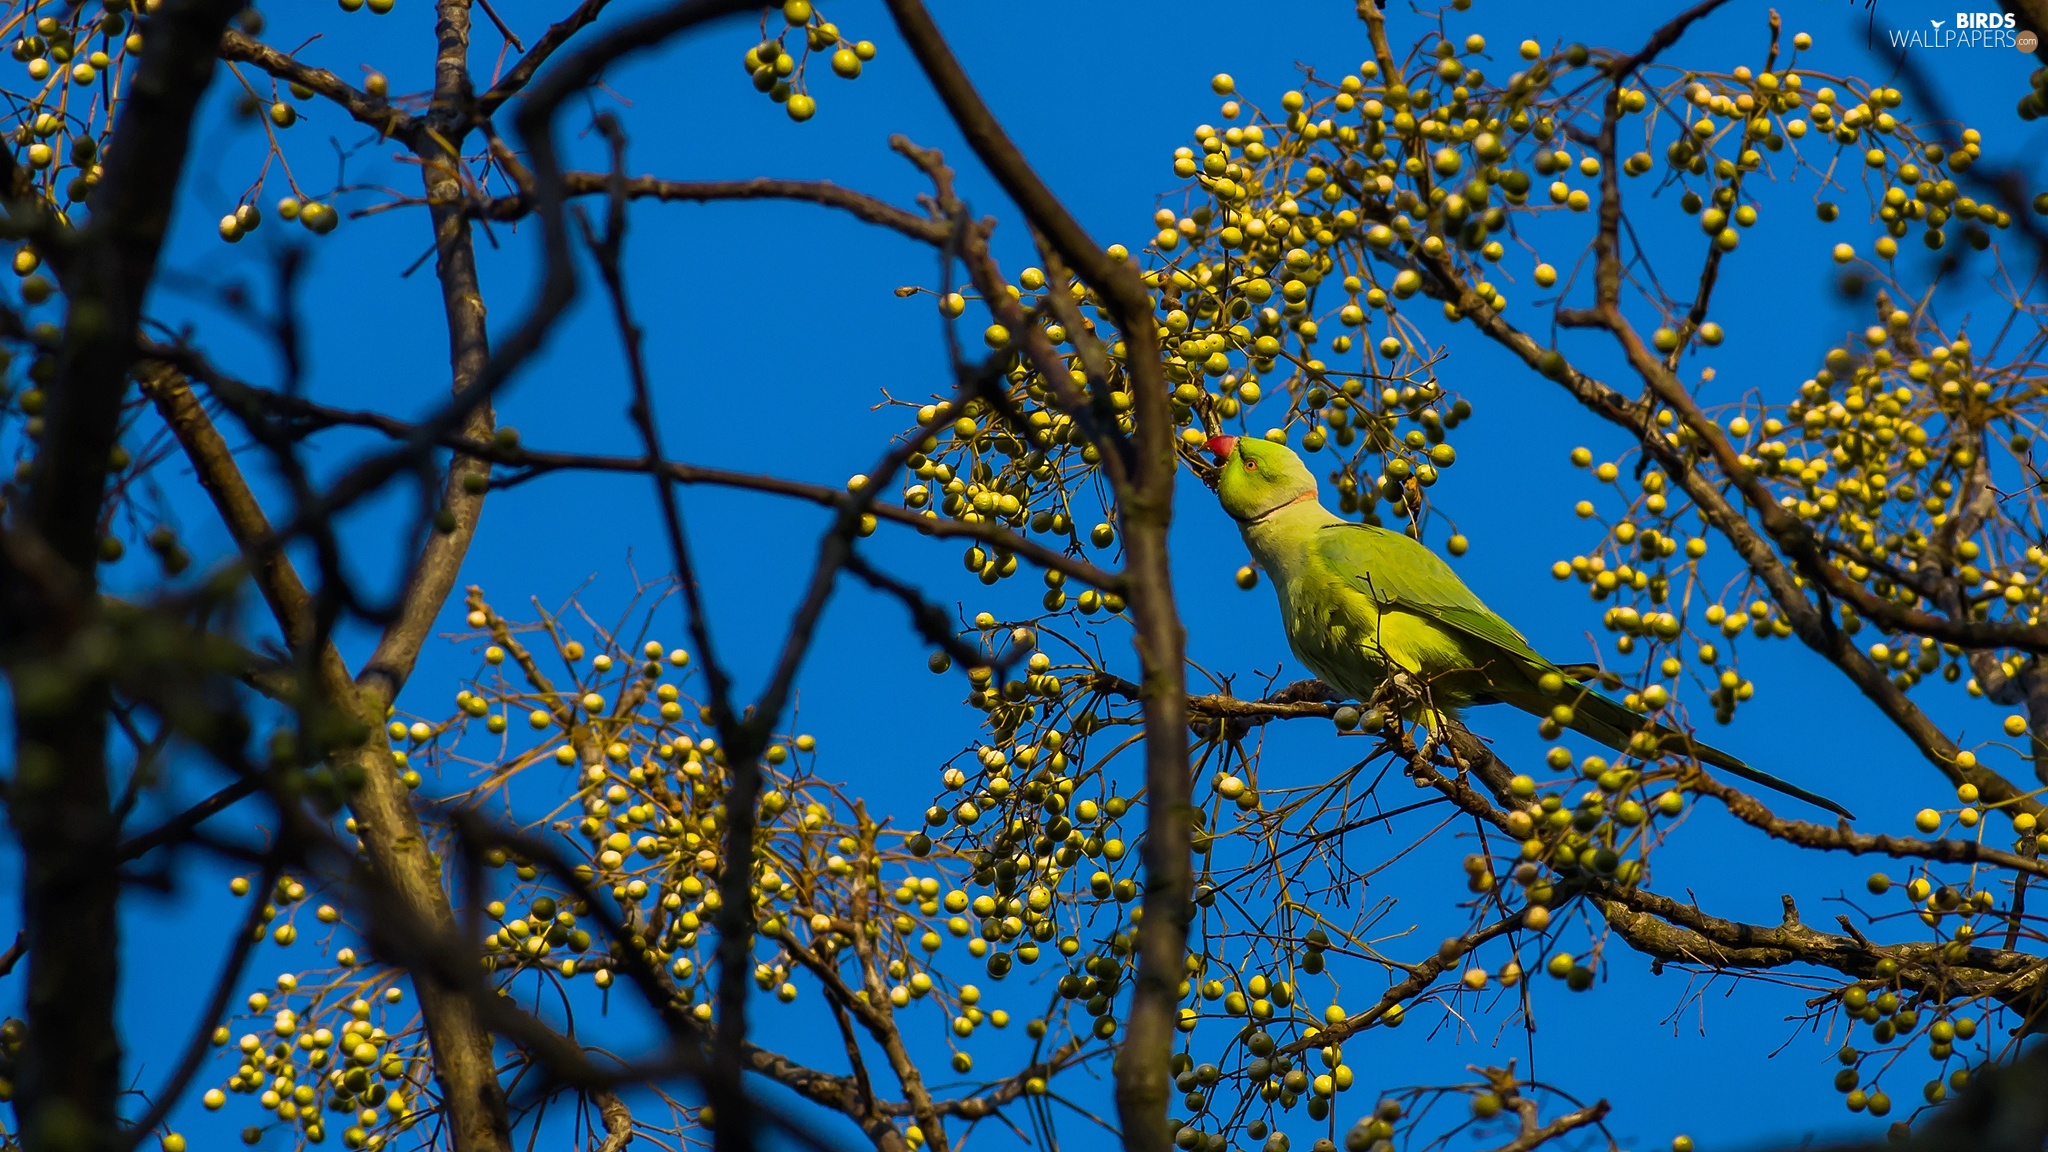 Rose-ringed Parakeet, Bird, Twigs, Fruits, trees, parrot